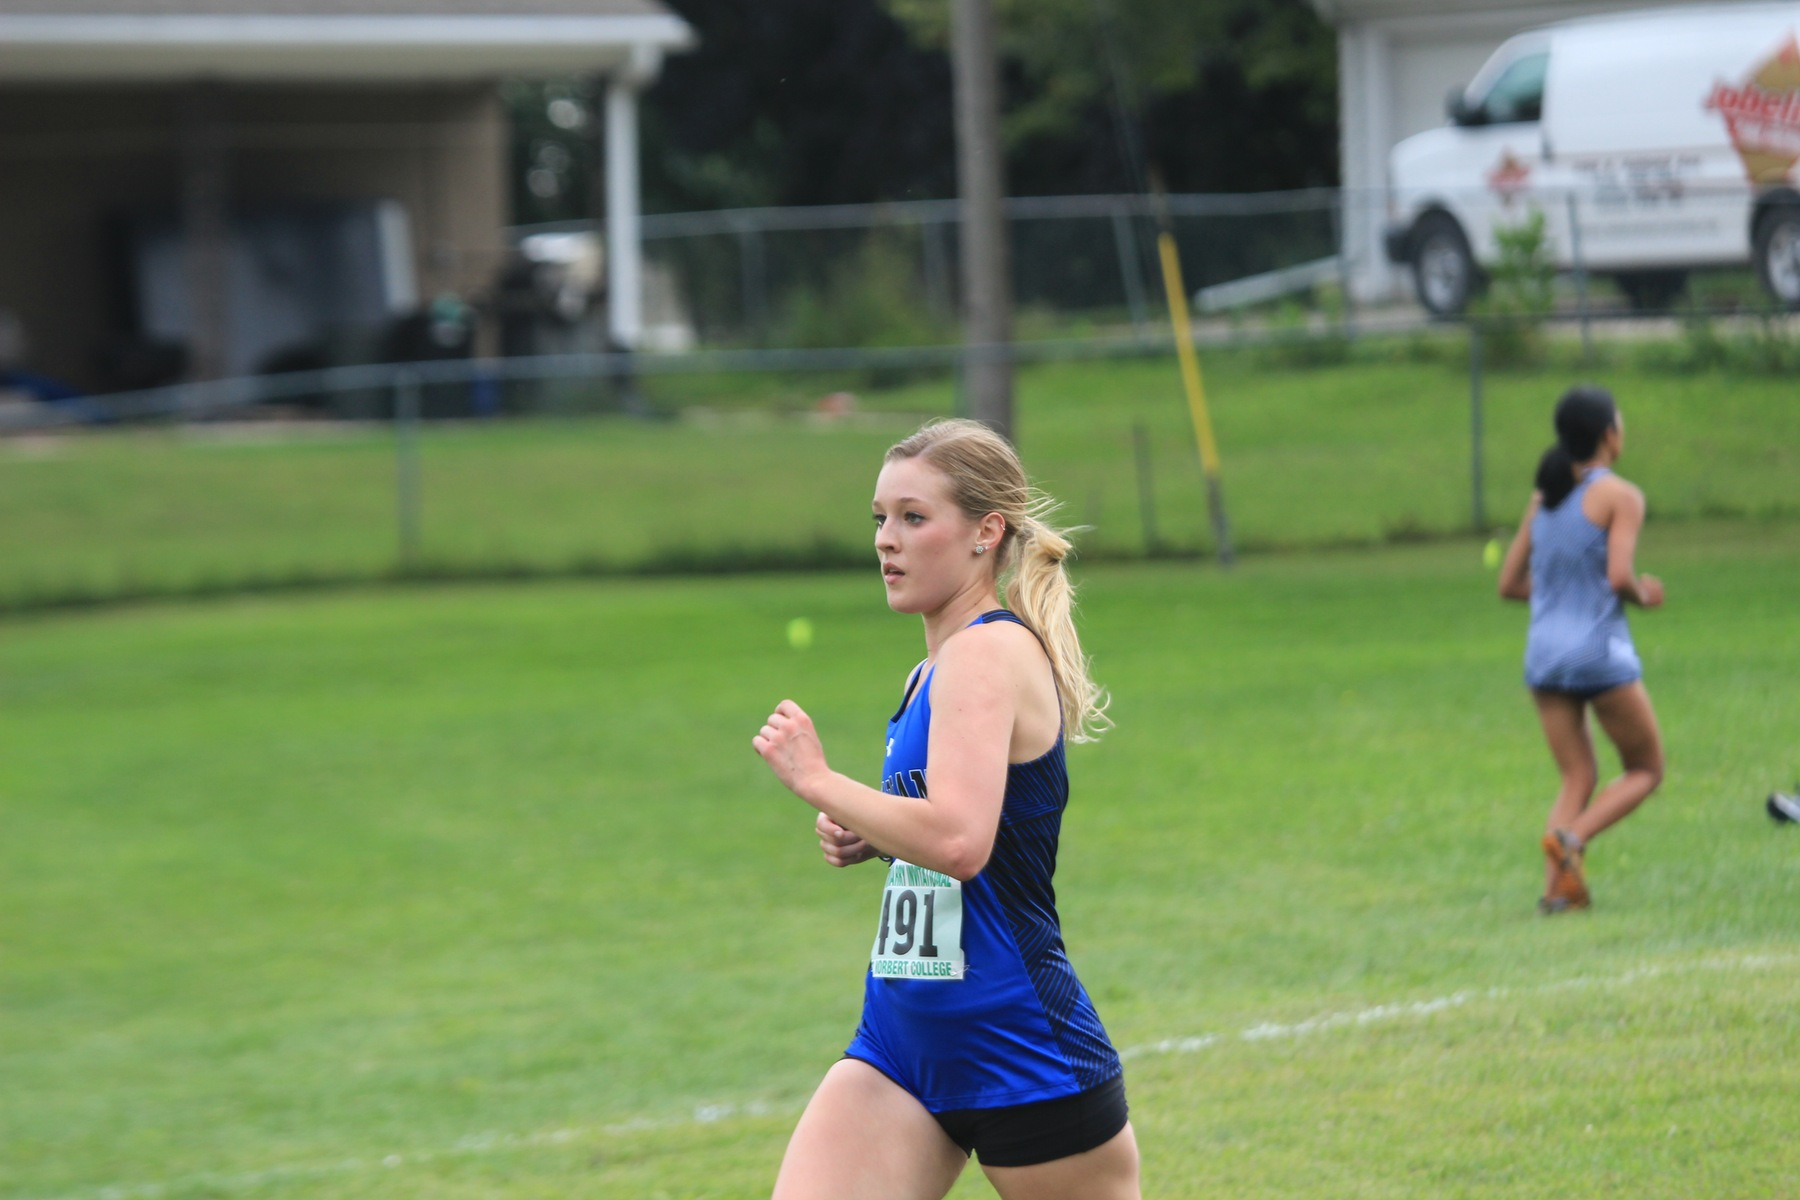 Alyssa Zuhlke looks to keep her pace.